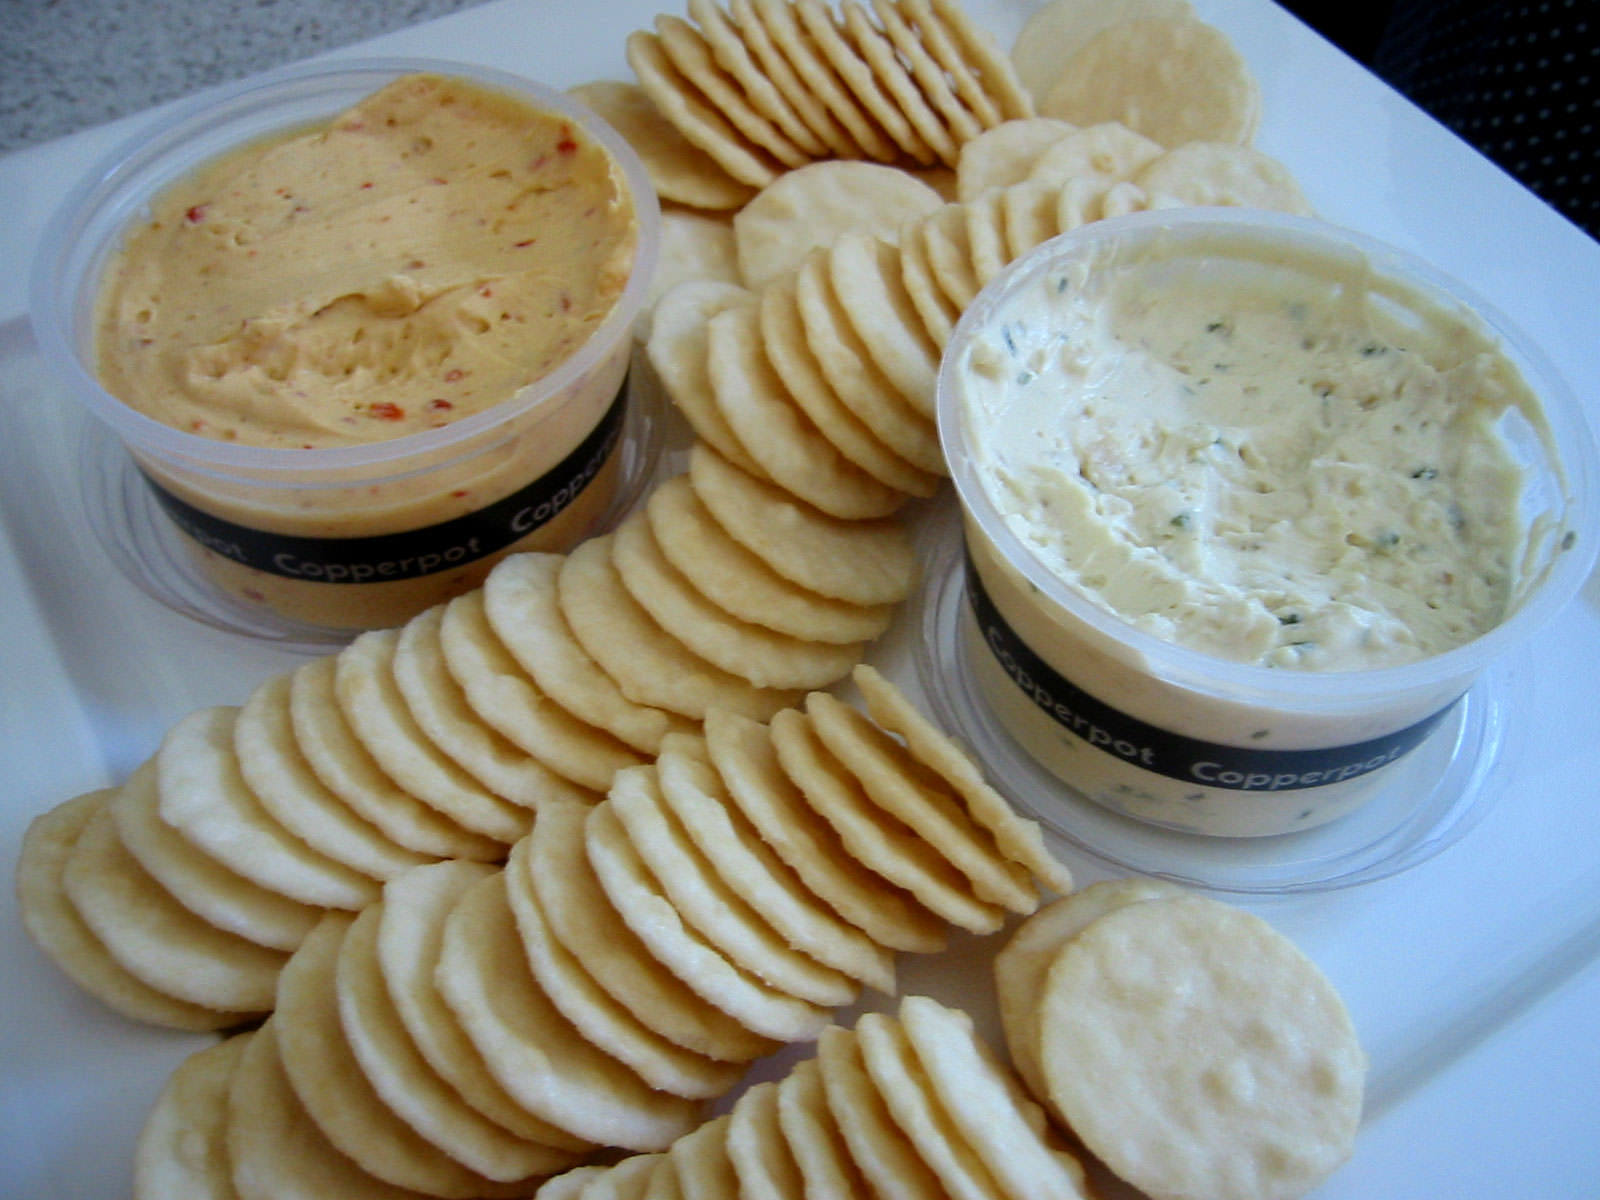 Rice crackers and two dips